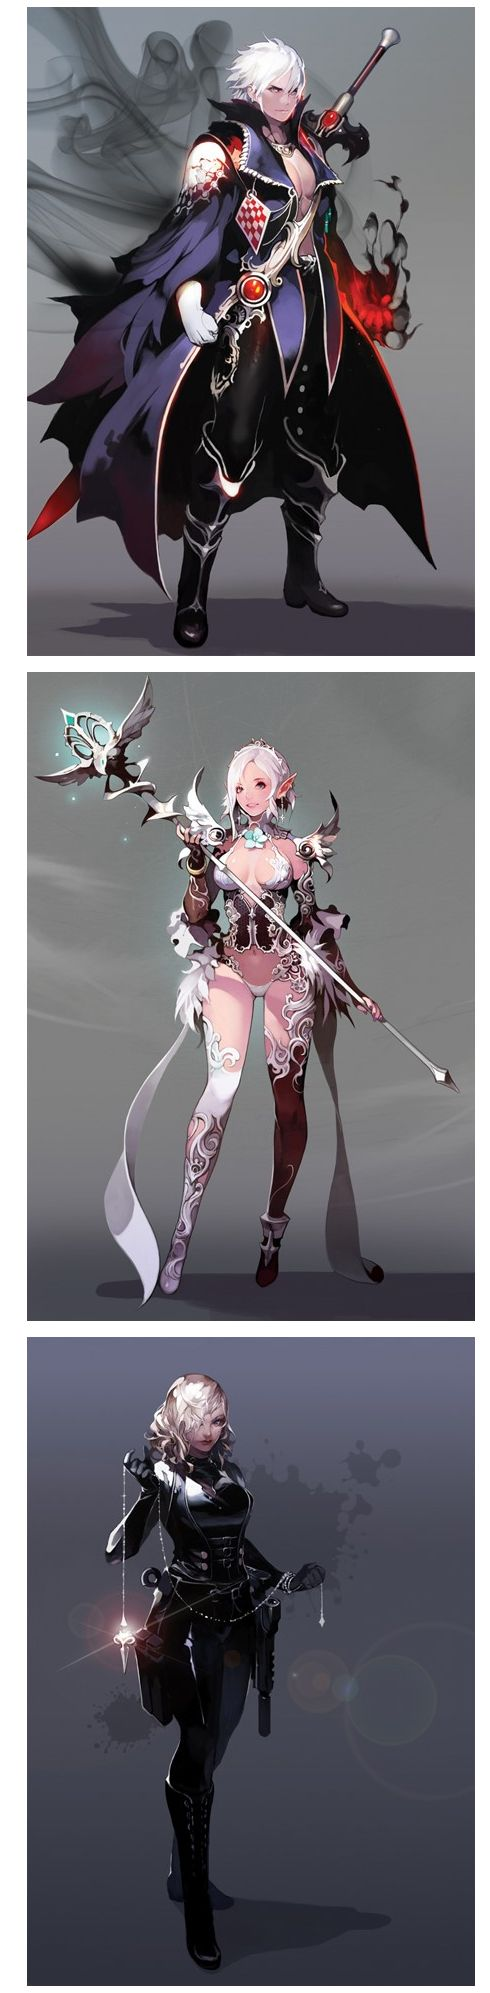 47 best art images on pinterest | female characters, anime